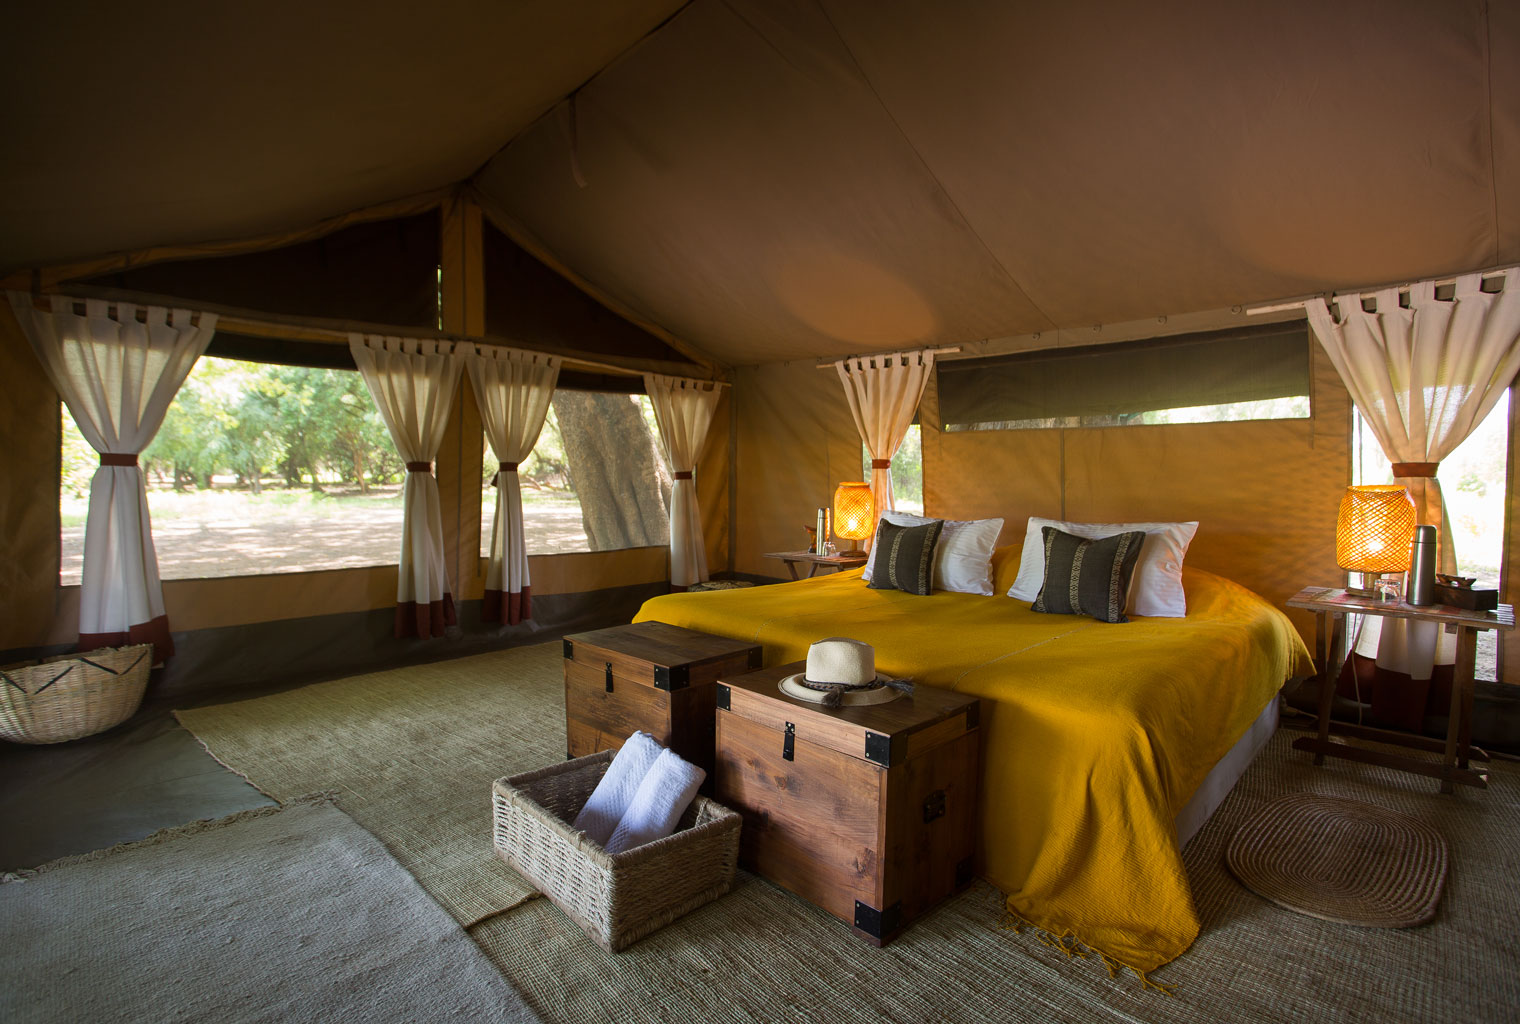 https://www.c4photosafaris.com/uploader/images/Lales-Camp-Ethiopia-Omo-Valley-Double-Bedroom.jpg